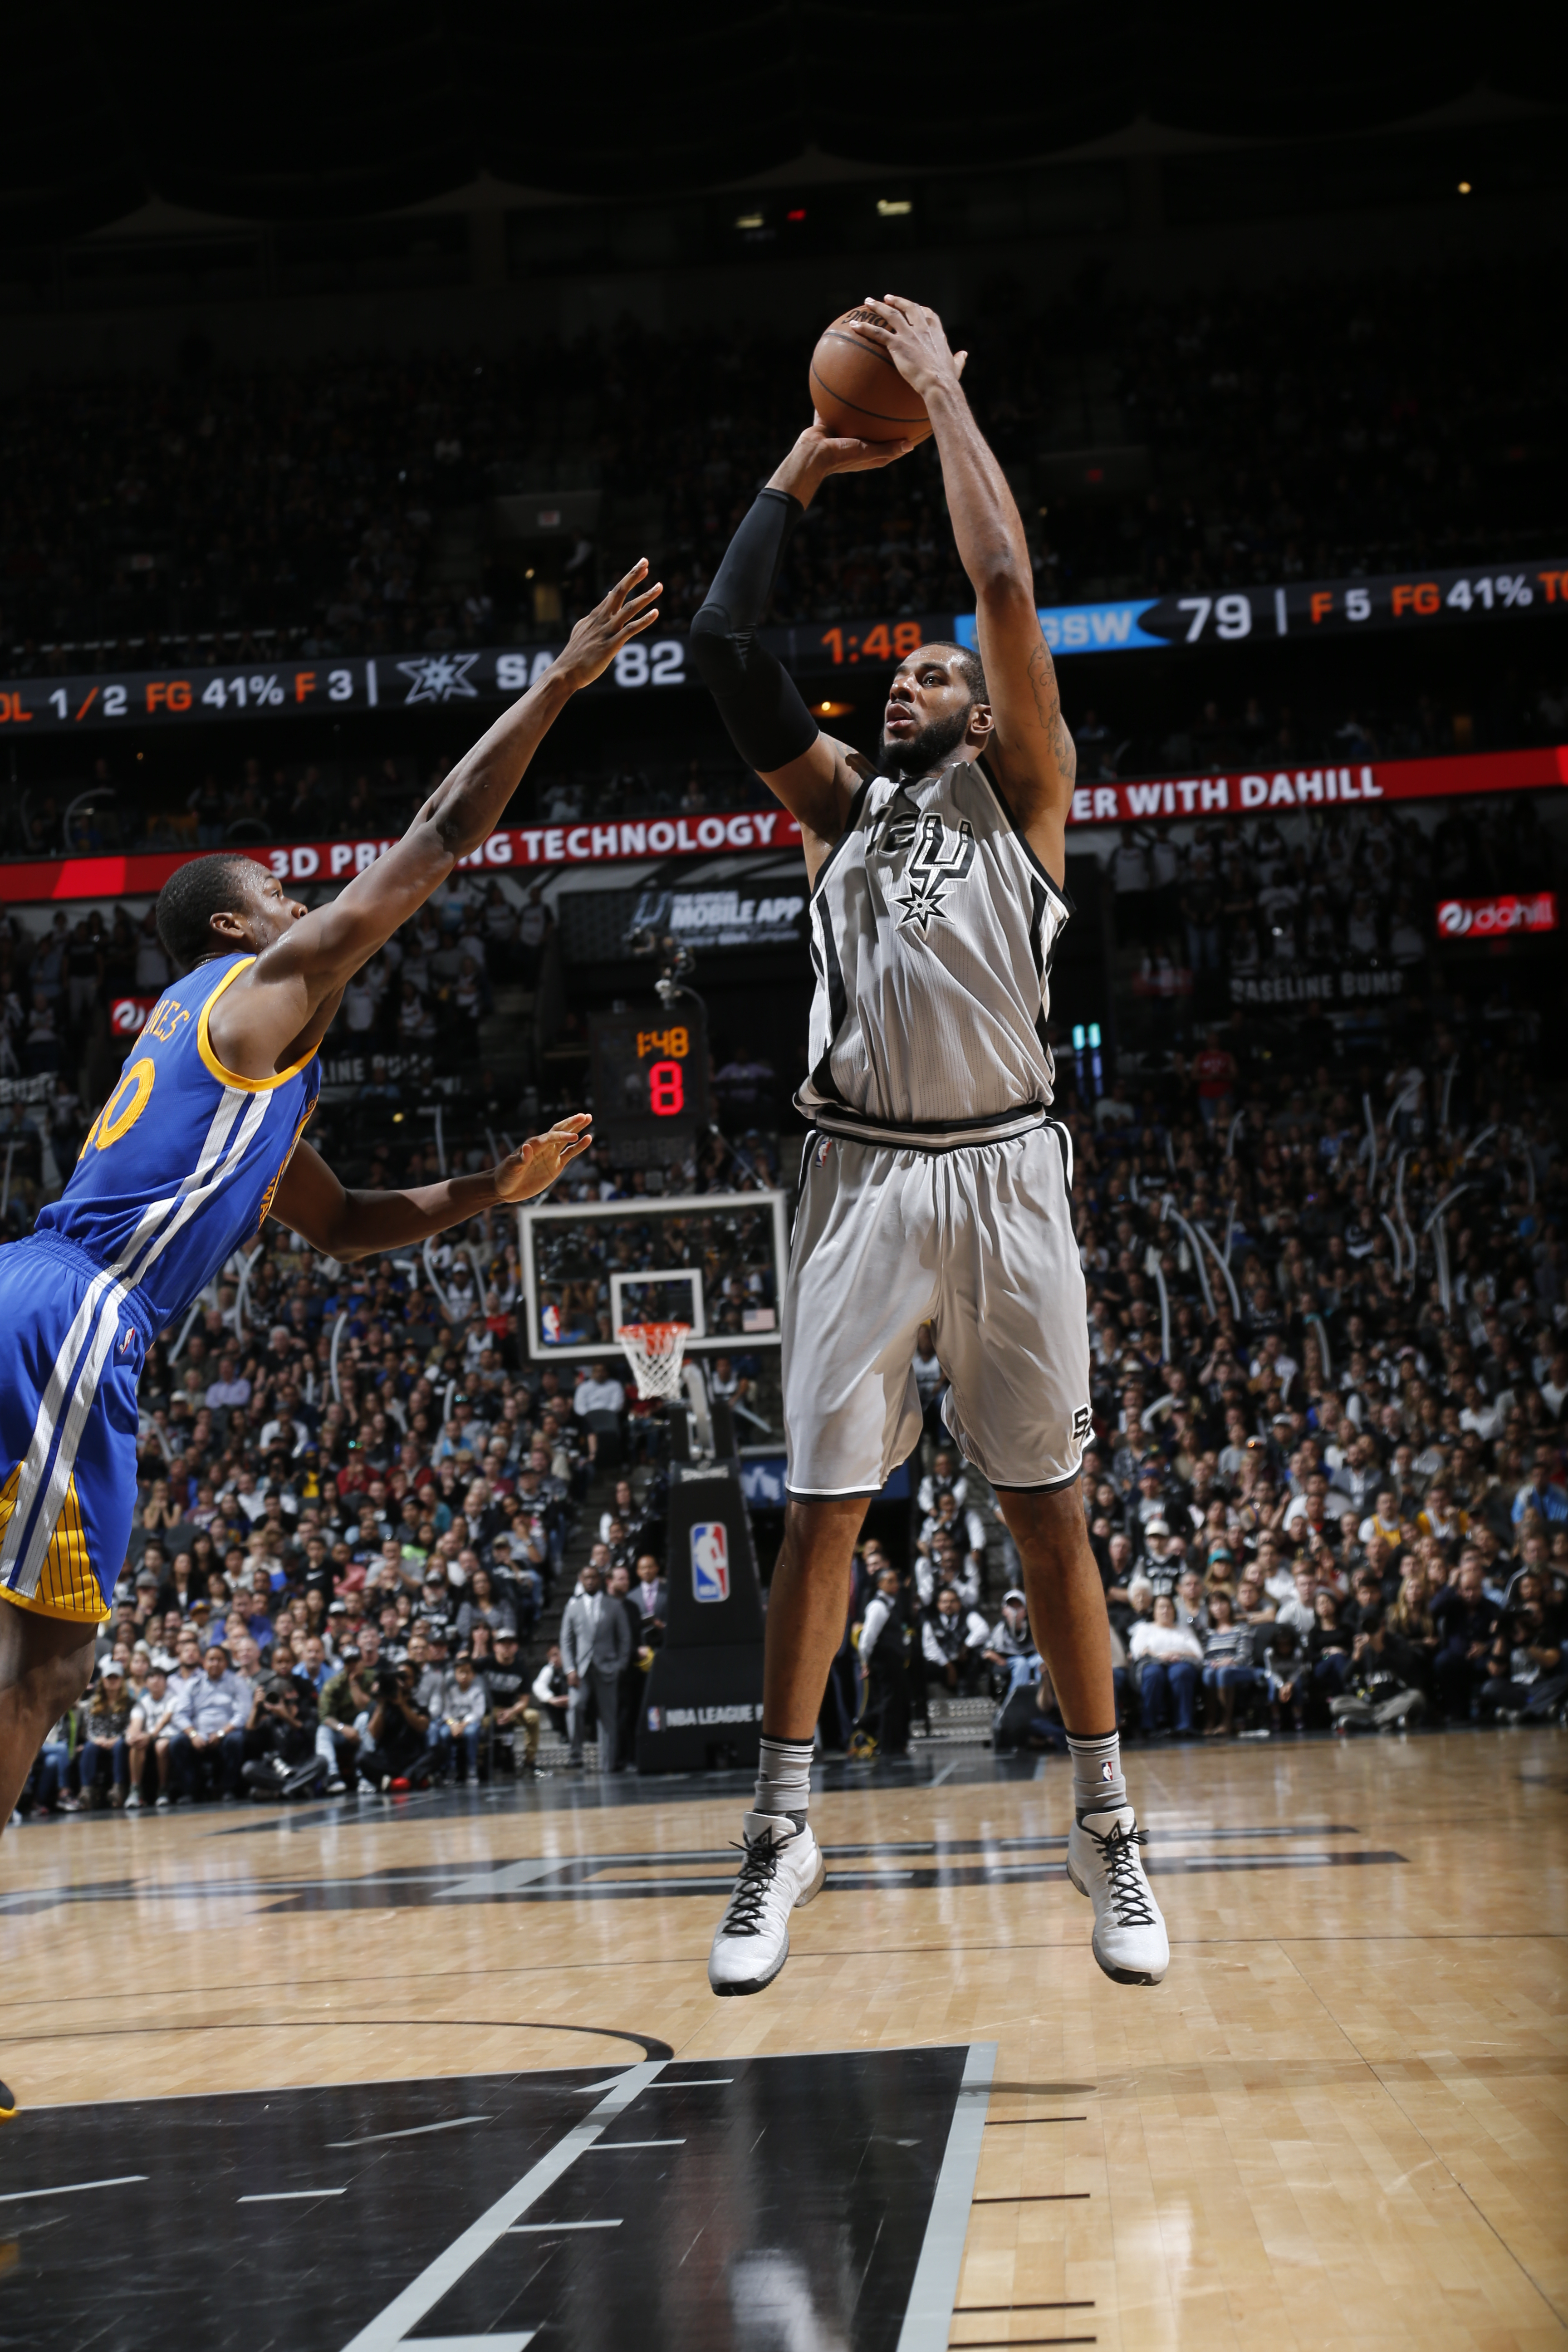 SAN ANTONIO, TX - MARCH 19:  LaMarcus Aldridge #12 of the San Antonio Spurs shoots against the Golden State Warriors on March 19, 2016 at the AT&T Center in San Antonio, Texas.